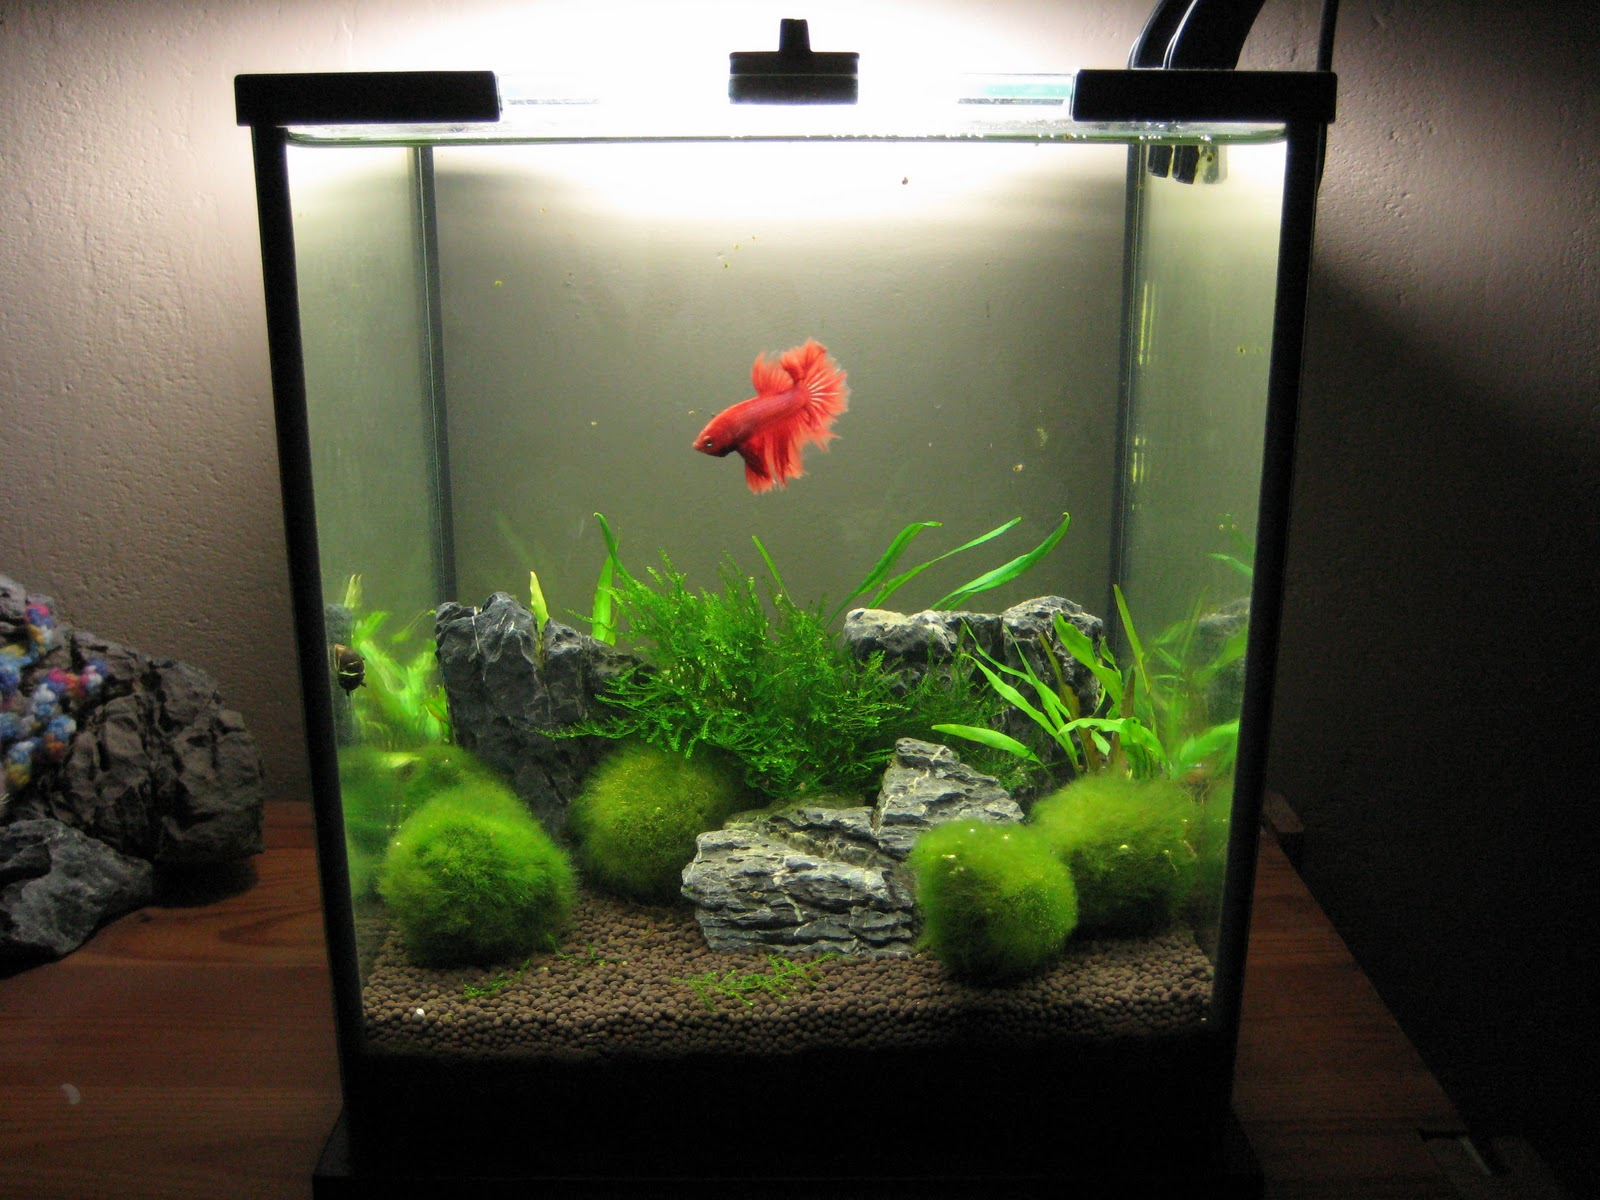 Betta fish tank setup ideas that make a statement for 2 gallon betta fish tank